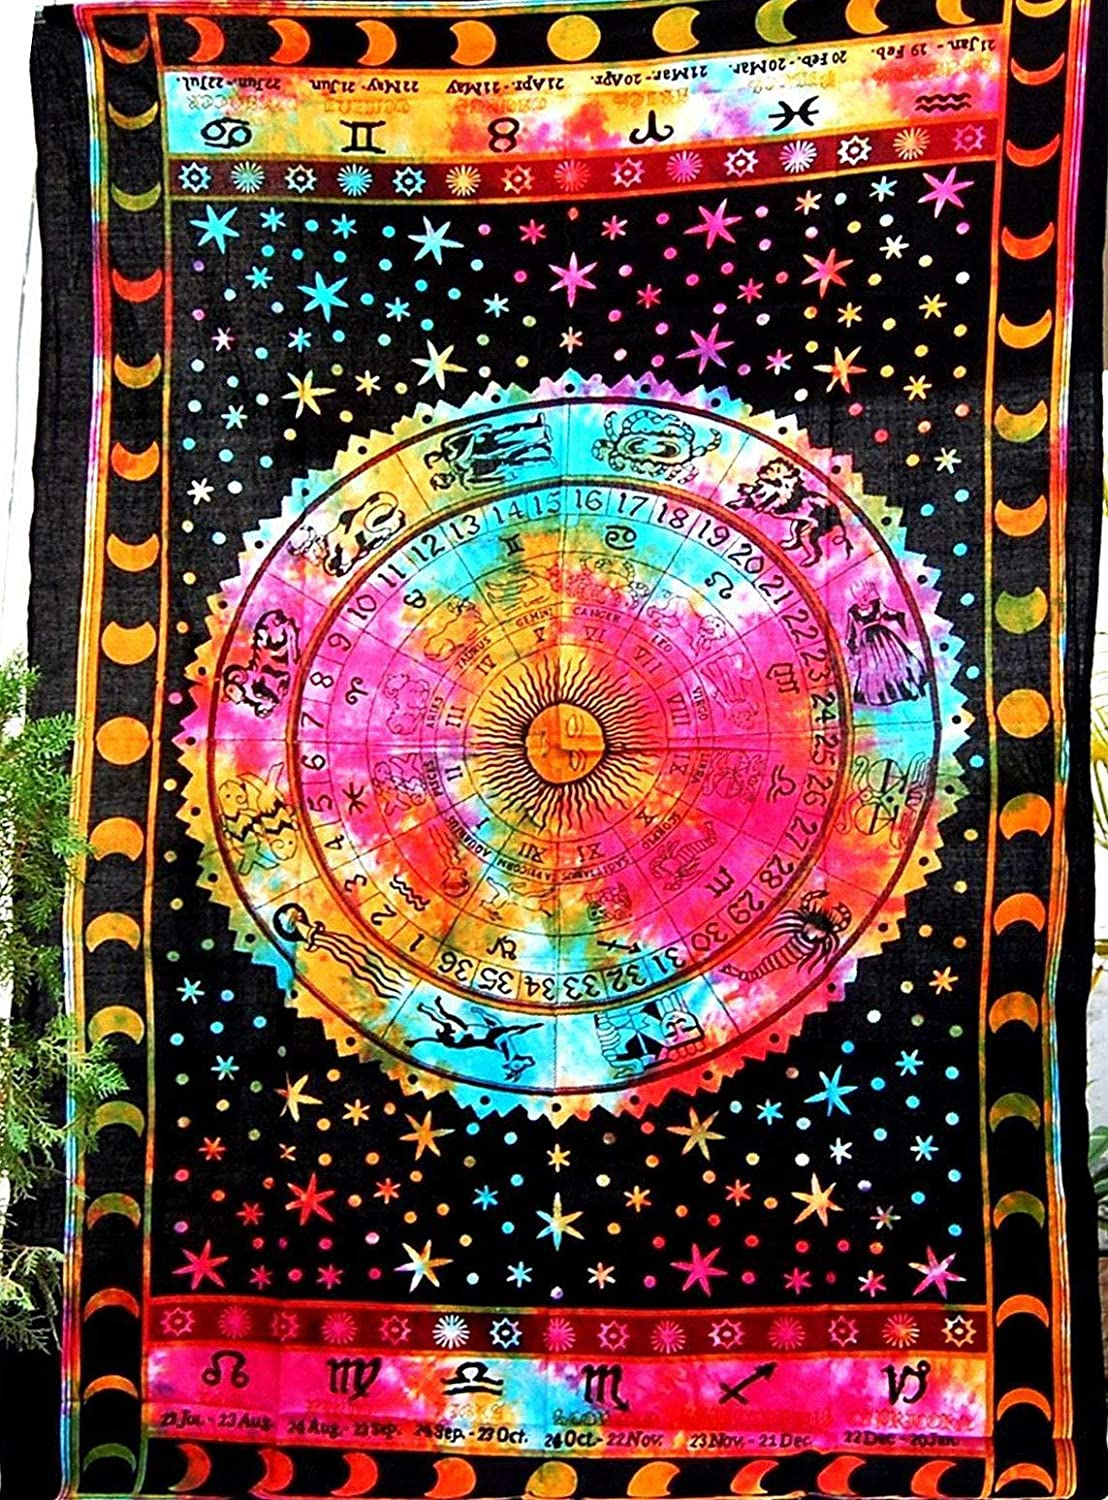 Jaipur Handloom Multi Tie Dye Zodiac Tapestry Wall Hanging Zodiac Sign Celestial Tapestry Wall Decor, Astrological Sun Moon Tapestry Wall Hanging, Horoscope Psychedelic Tapestries Wall Art